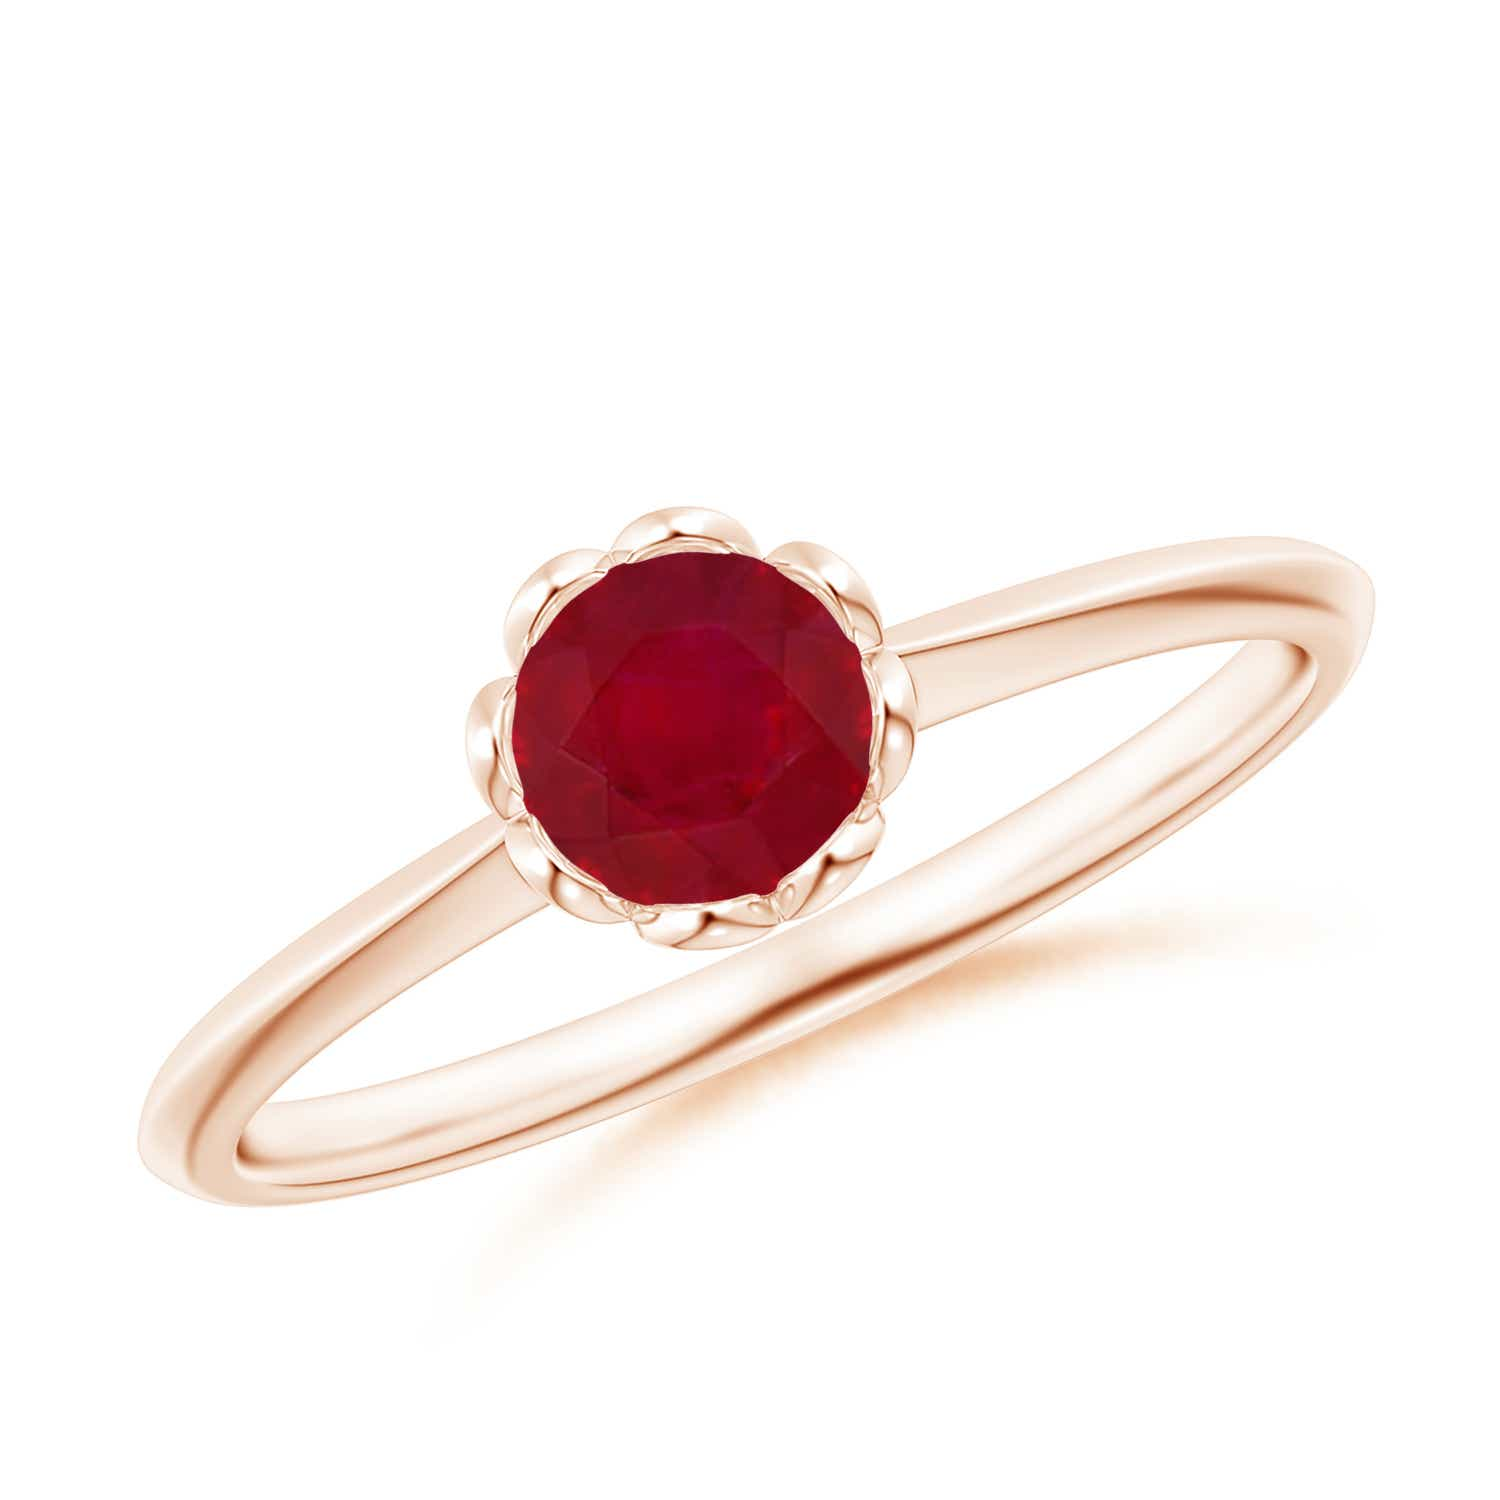 Classic Bezel-Set Round Ruby Floral Engagement Ring